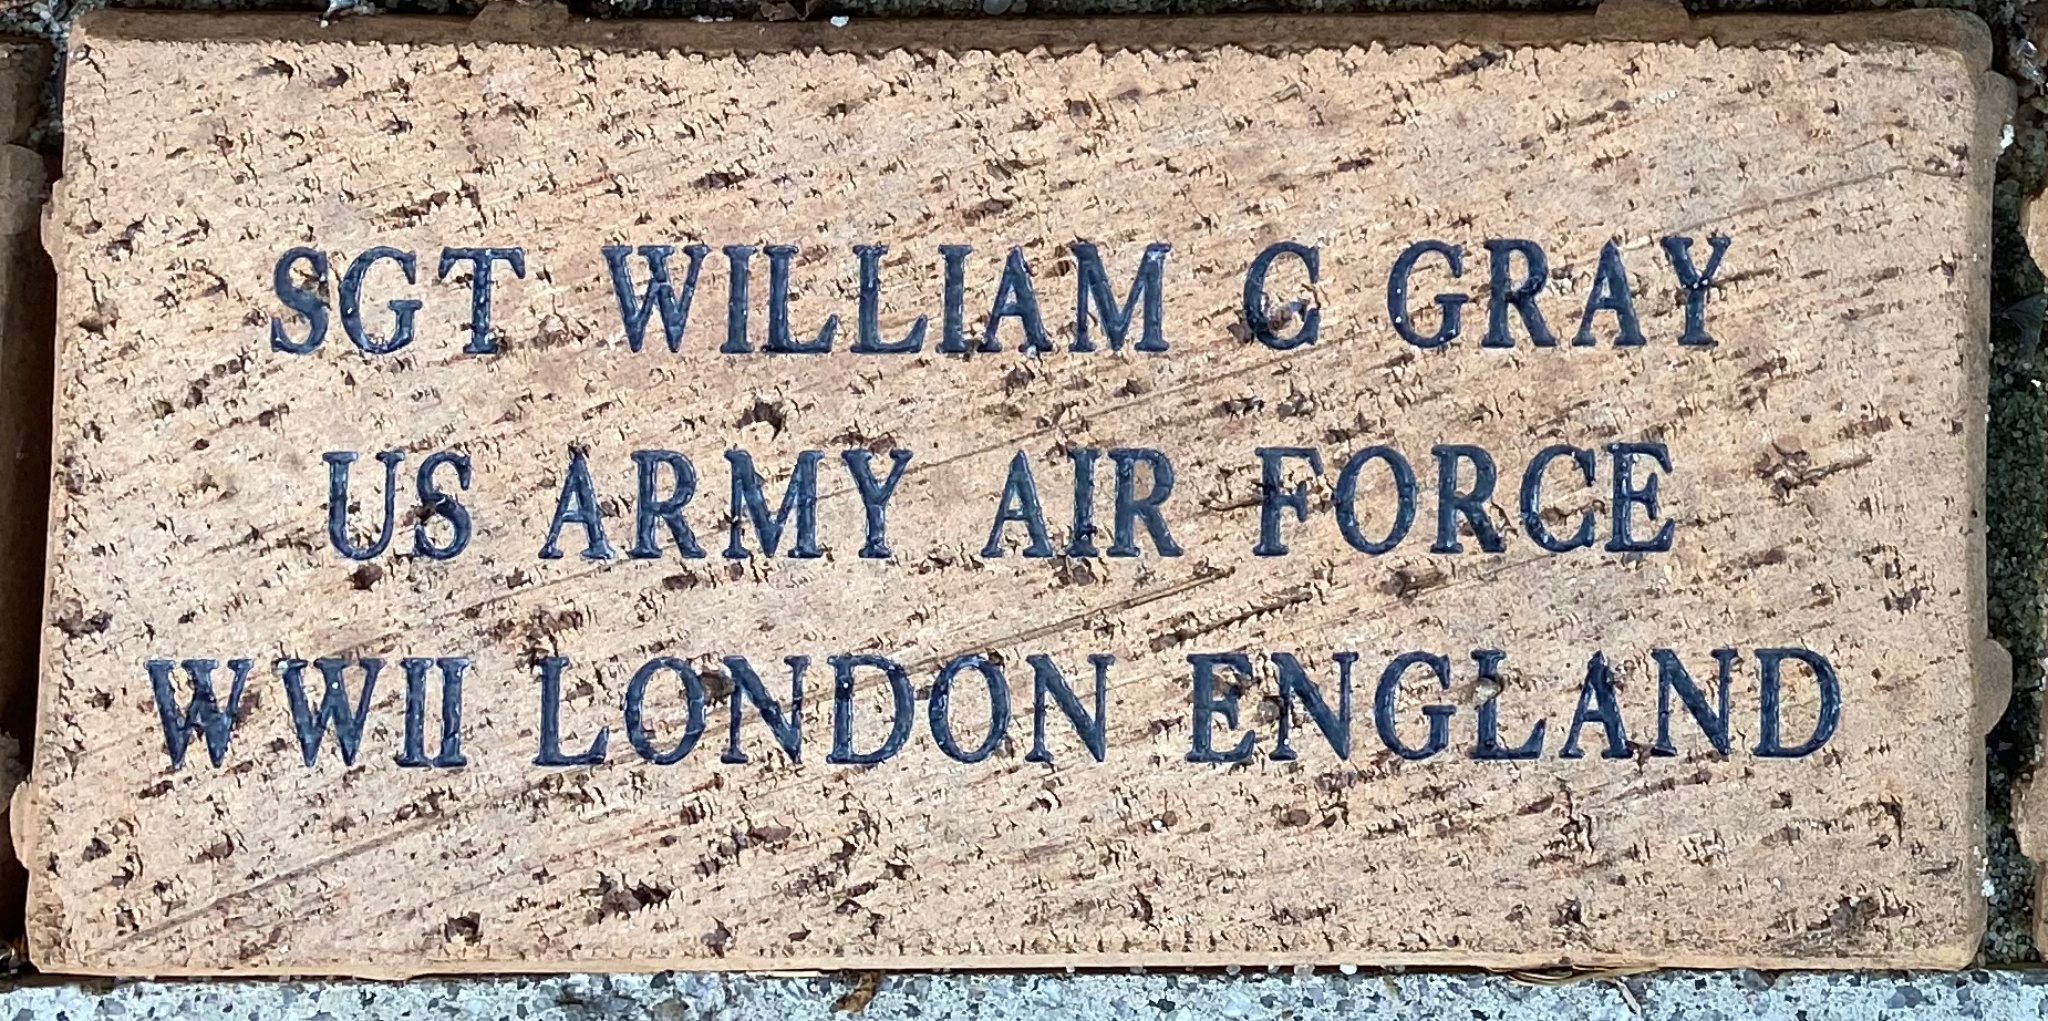 SGT WILLIAM C GRAY US ARMY AIR FORCE WWII LONDON ENGLAND